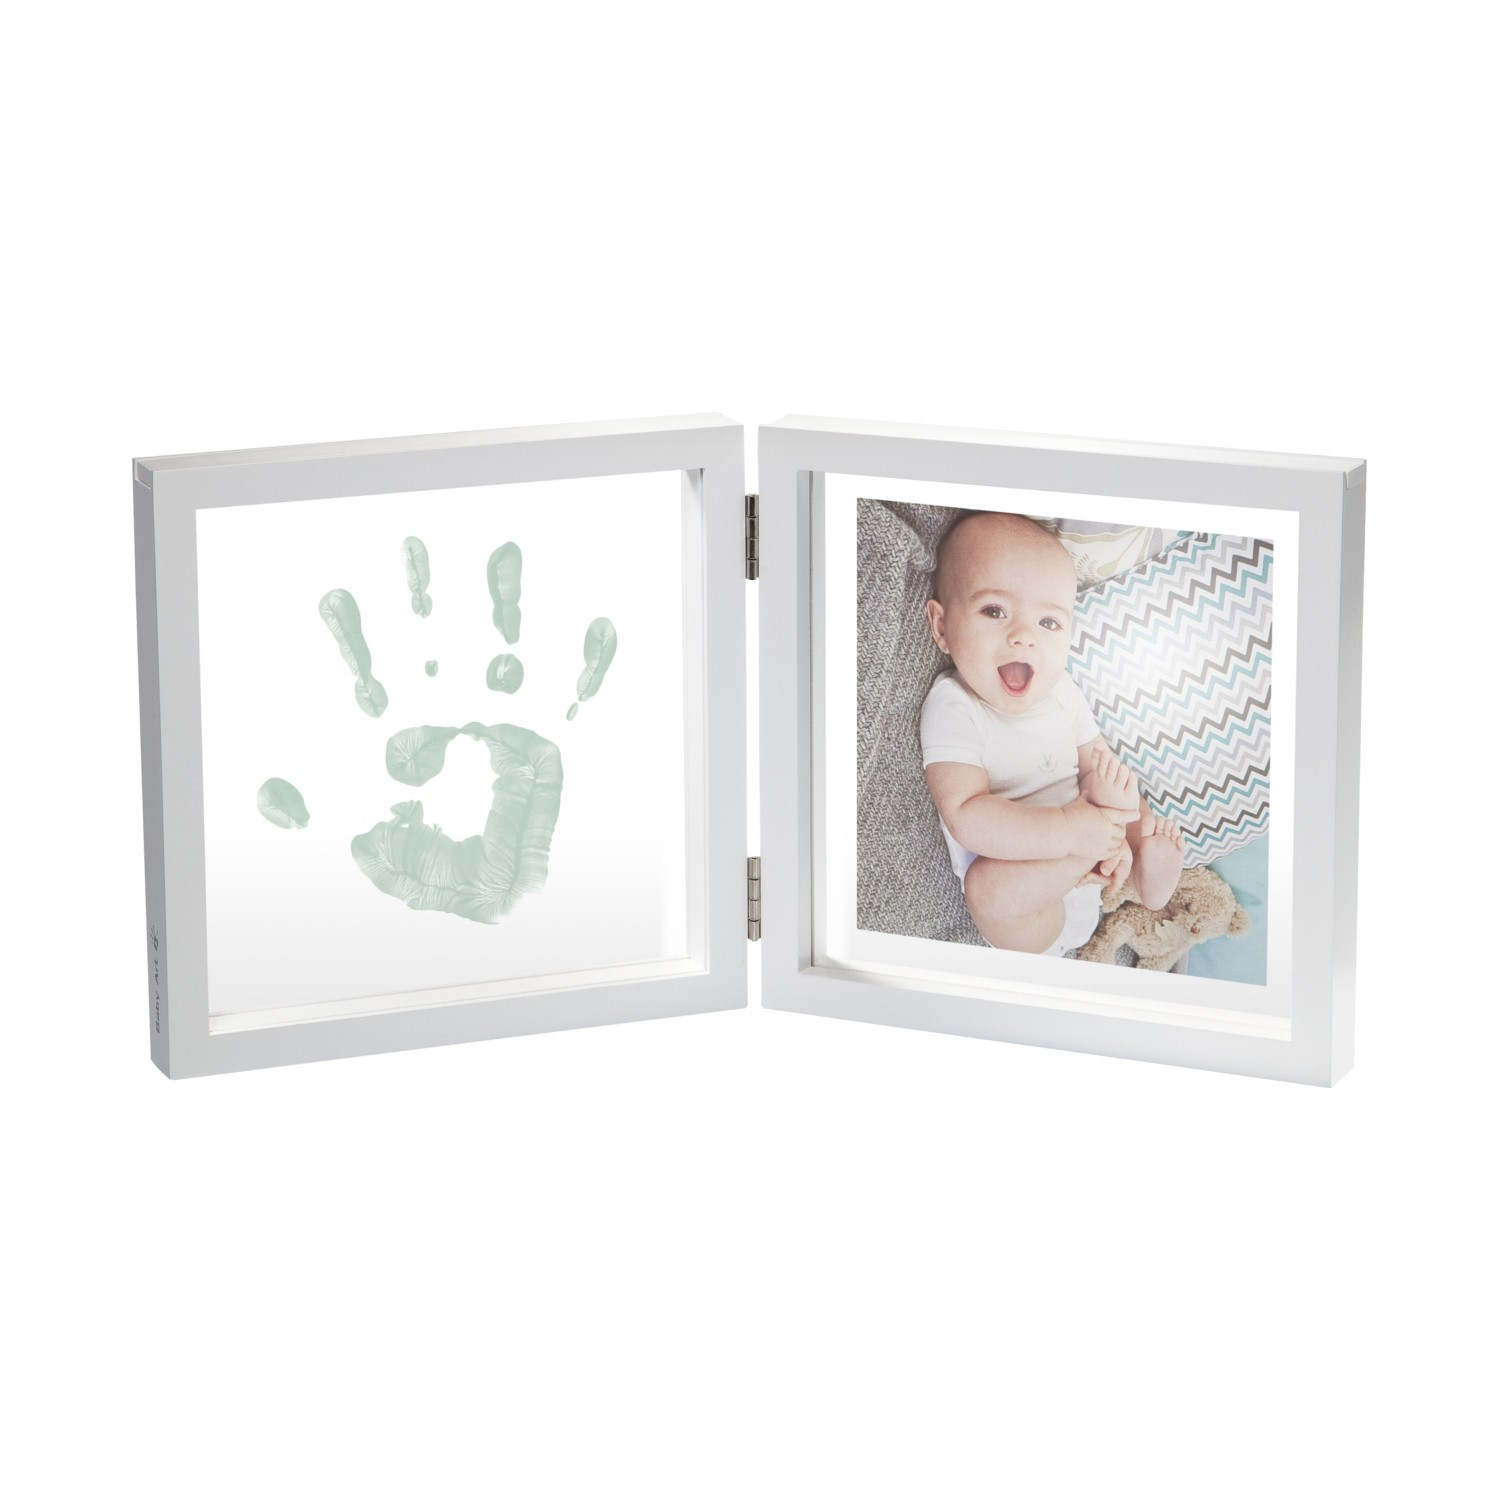 Image of Baby Art   My Baby Style Transparant Paint 35763